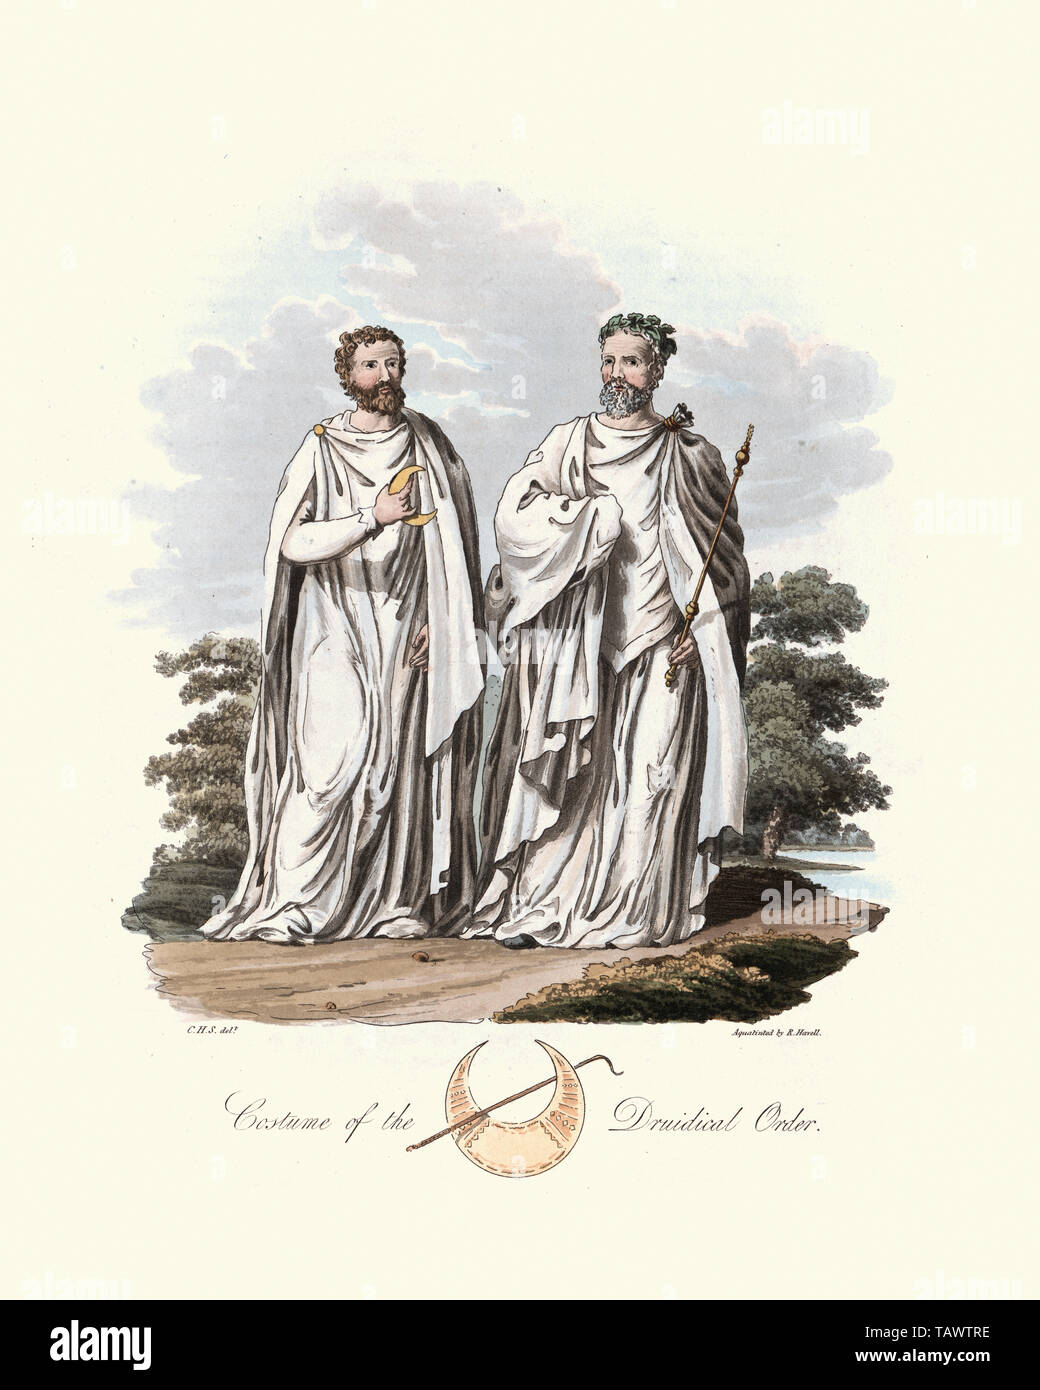 Ancient British Druids. 1815, The Costume of the Original Inhabitants of the British Islands, by MEYRICK, Samuel Rush and SMITH Charles Hamilton. A dr Stock Photo